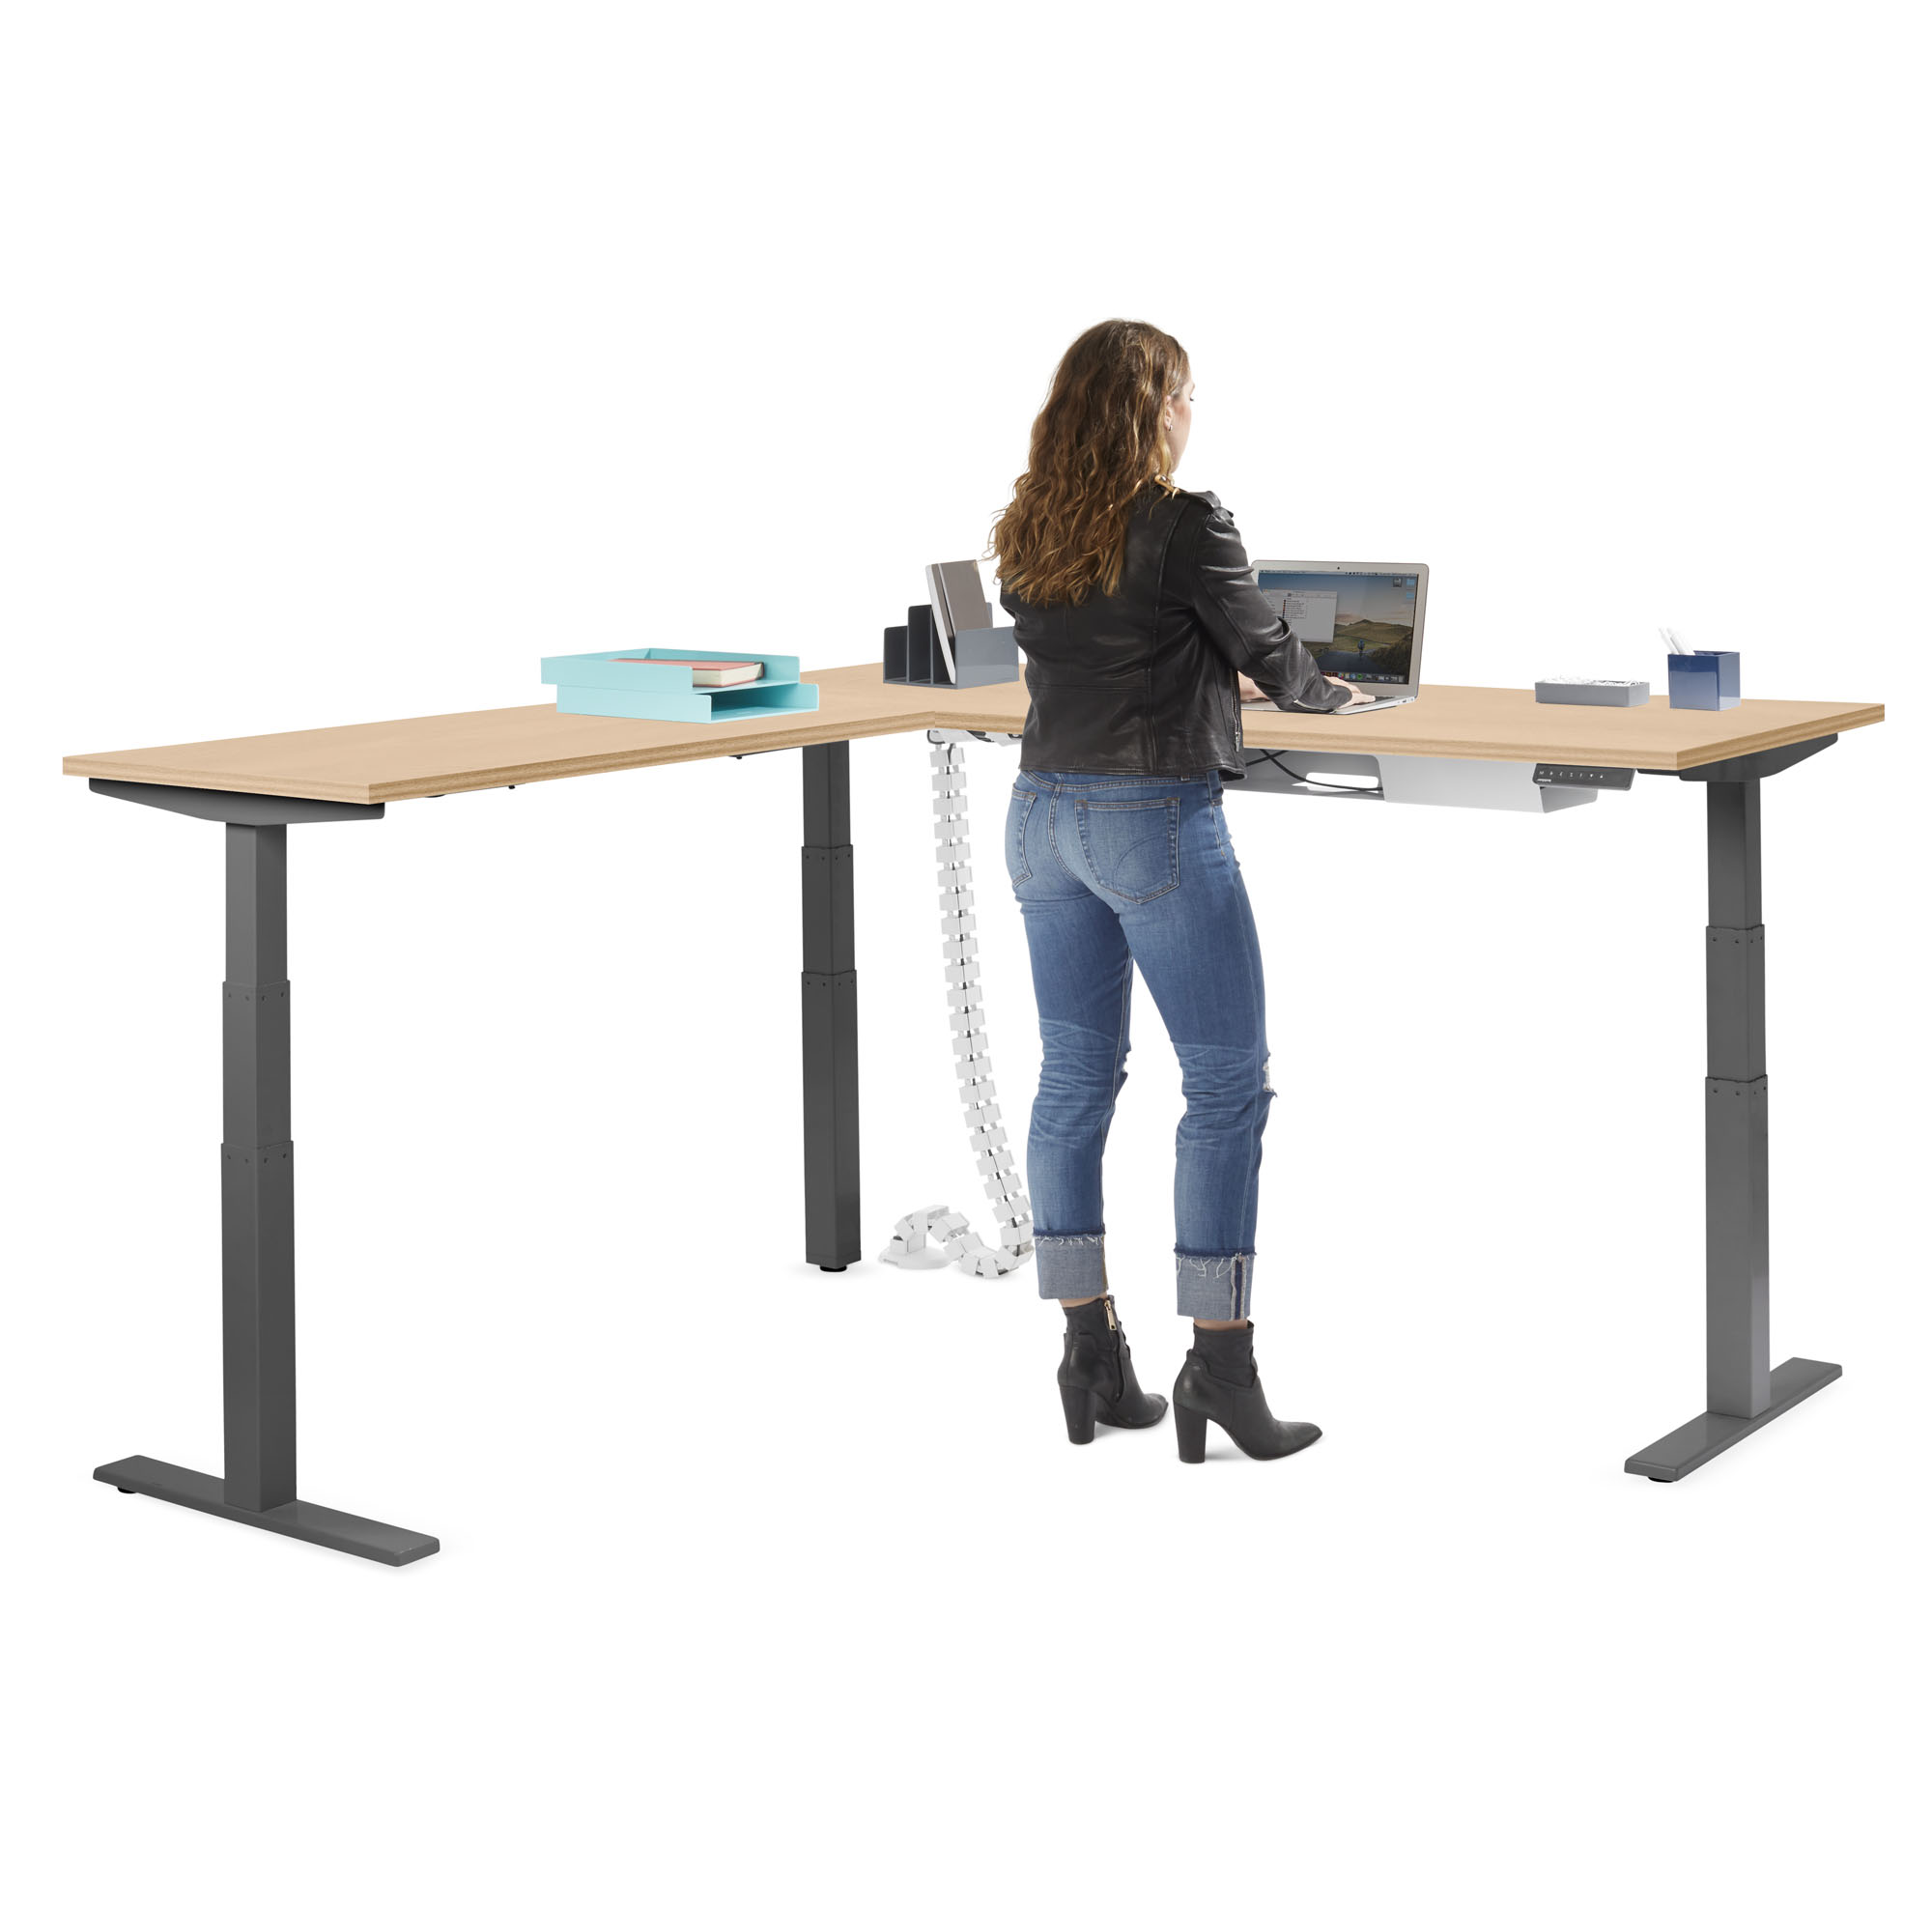 - Series L Adjustable Height Corner Desk With Charcoal Legs, Left Handed